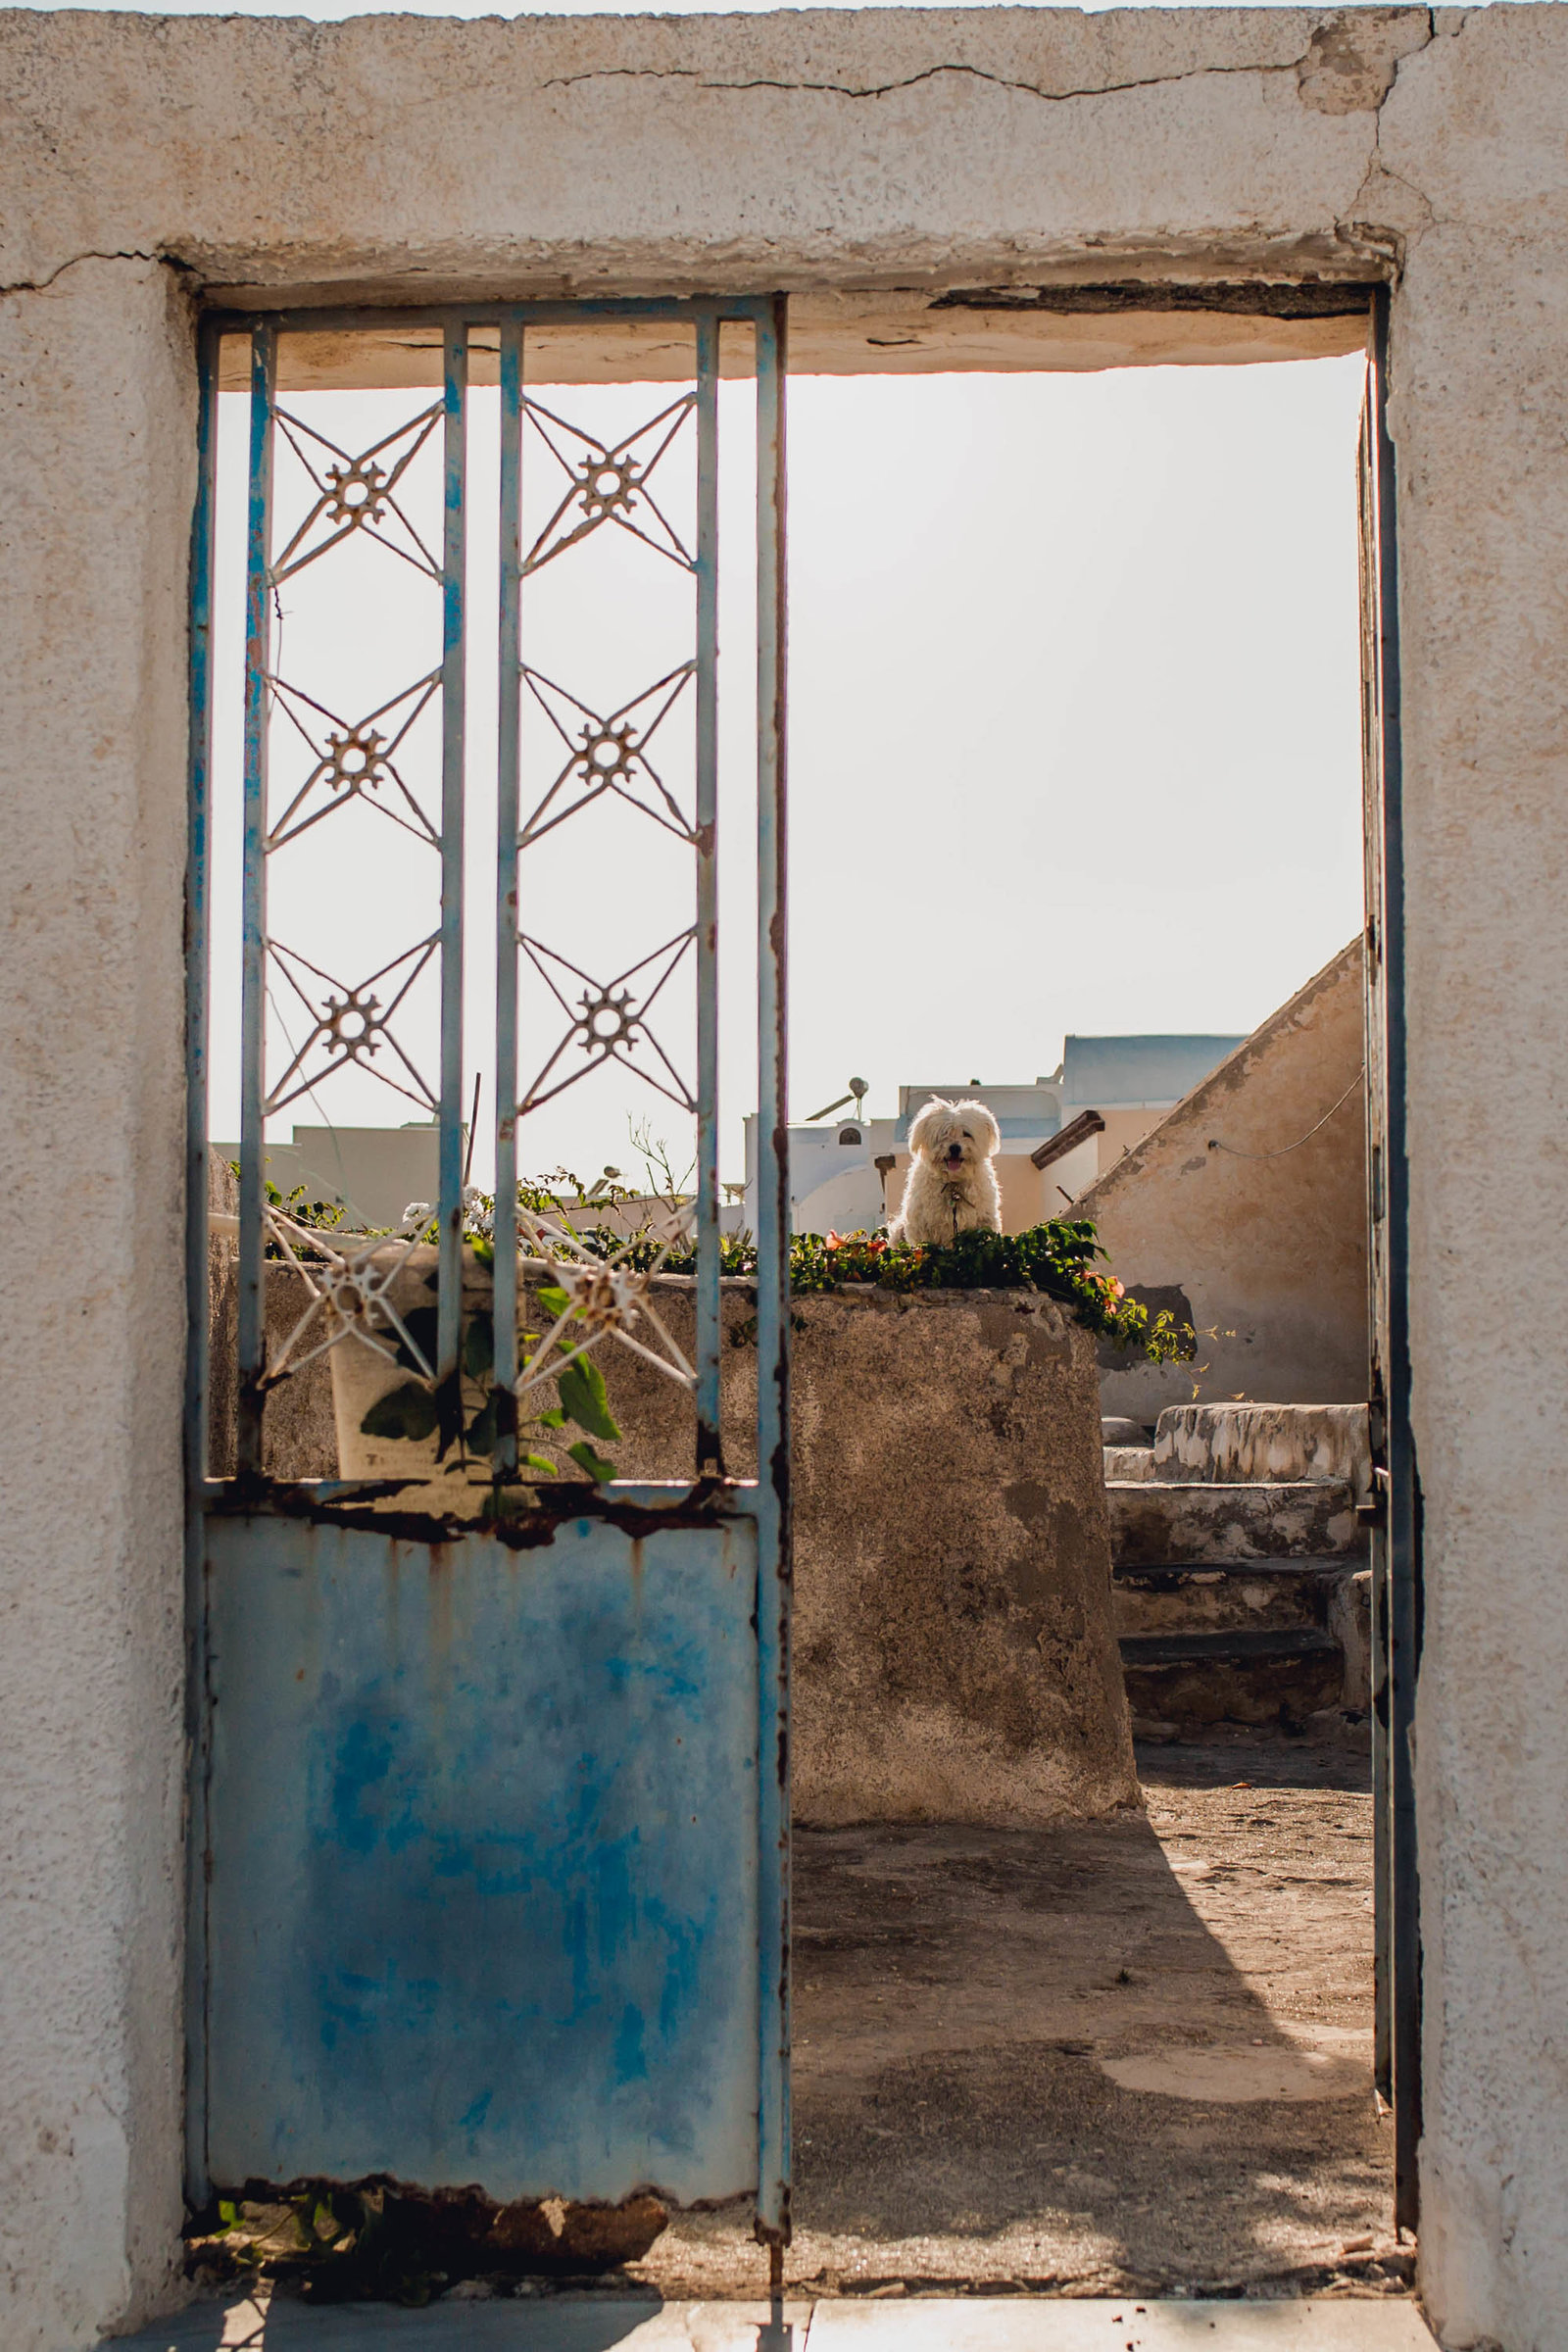 dog-yard-destination-travel-santorini-wedding-kate-timbers-photo-2641